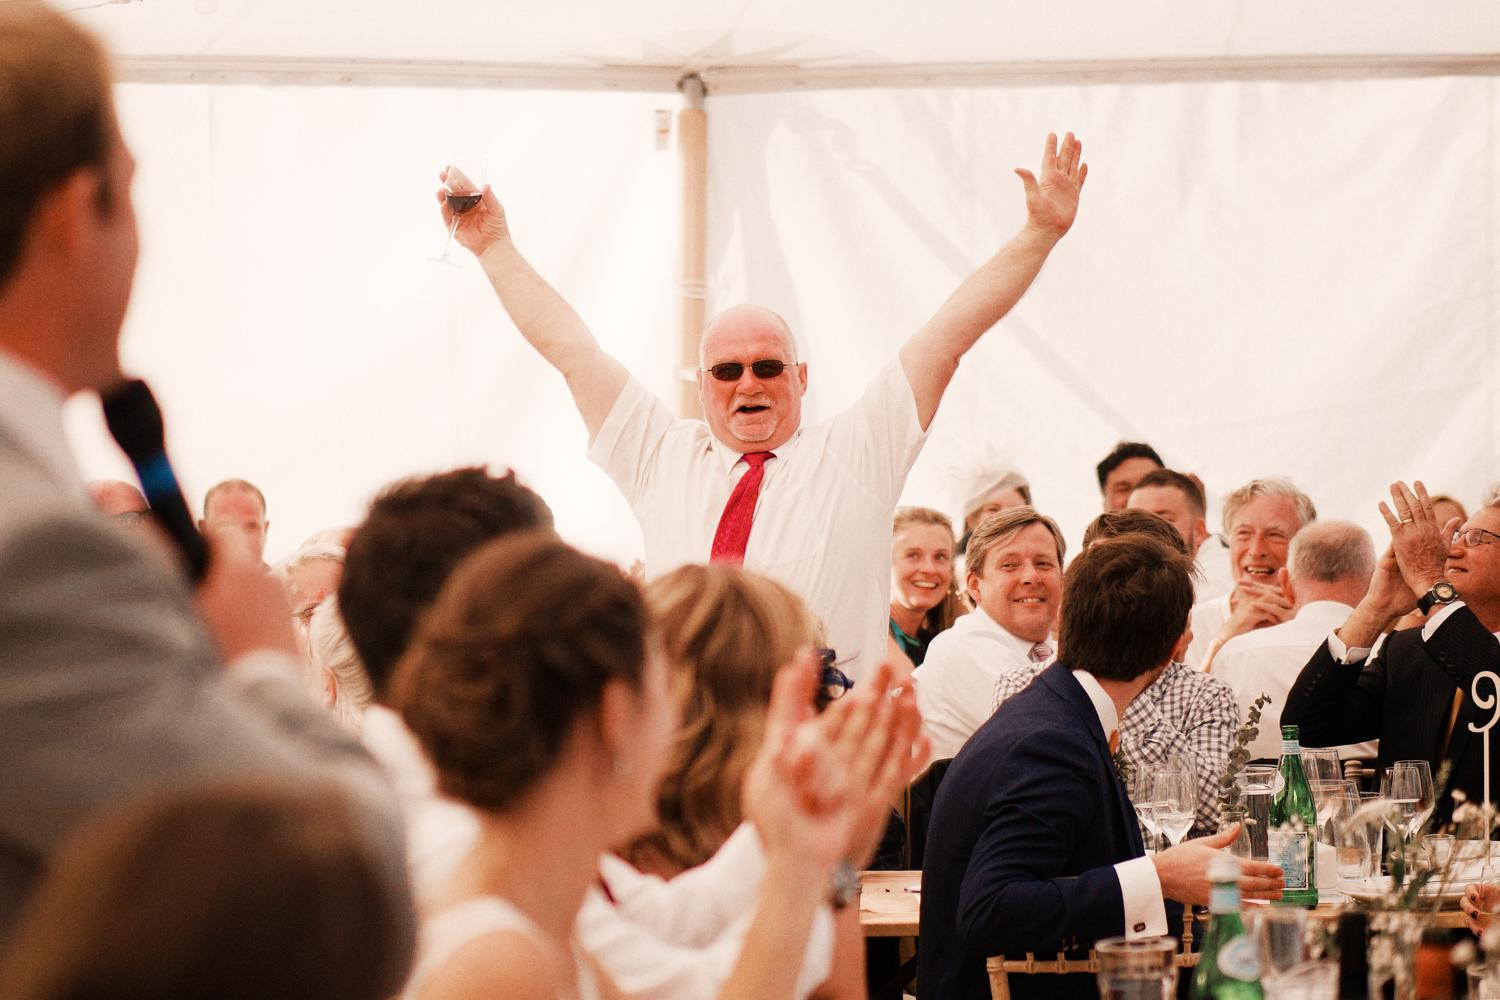 Father of the groom raises his hands dramatically during the speeches